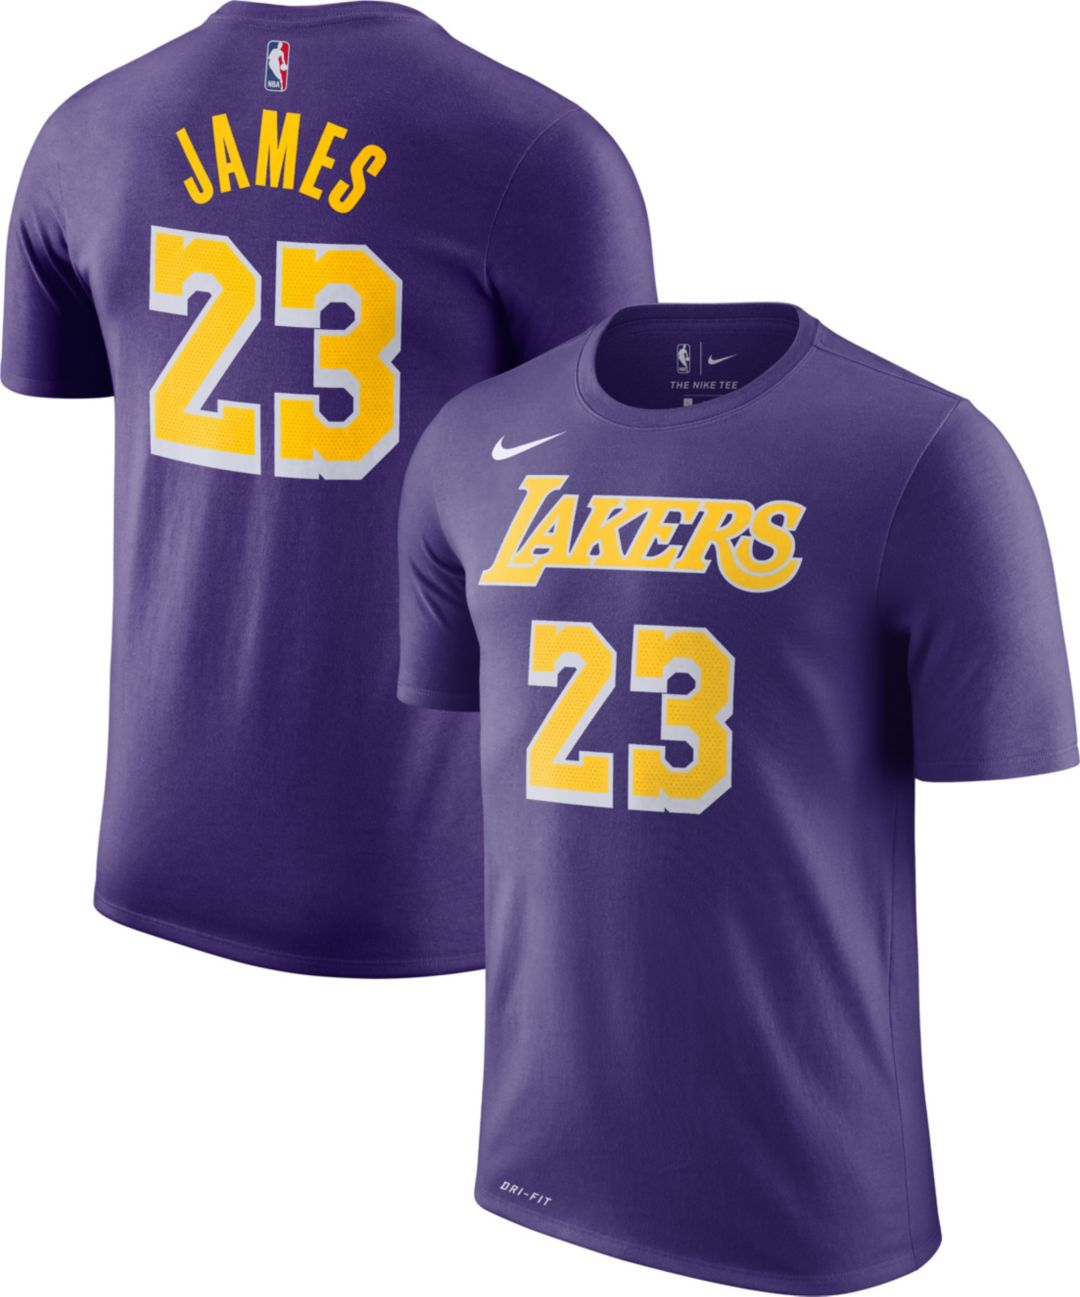 watch a0f80 4d0dd Nike Men's Los Angeles Lakers LeBron James Dri-FIT Purple T-Shirt